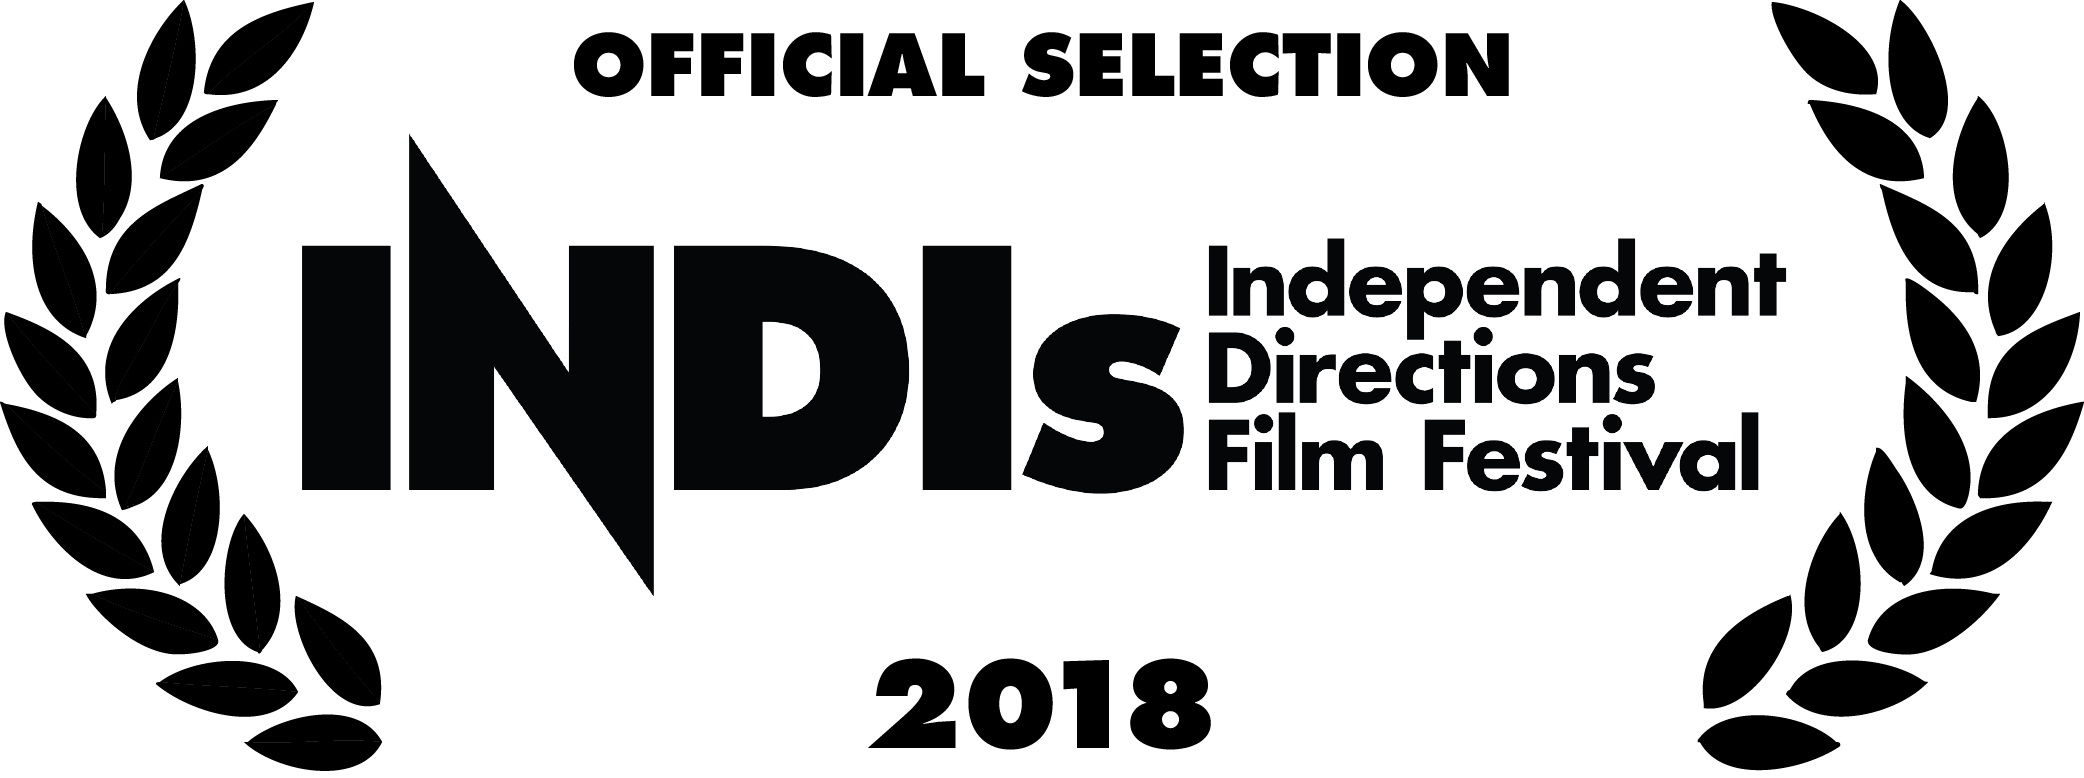 INDIs 2018 Laurels Selection B&W.png